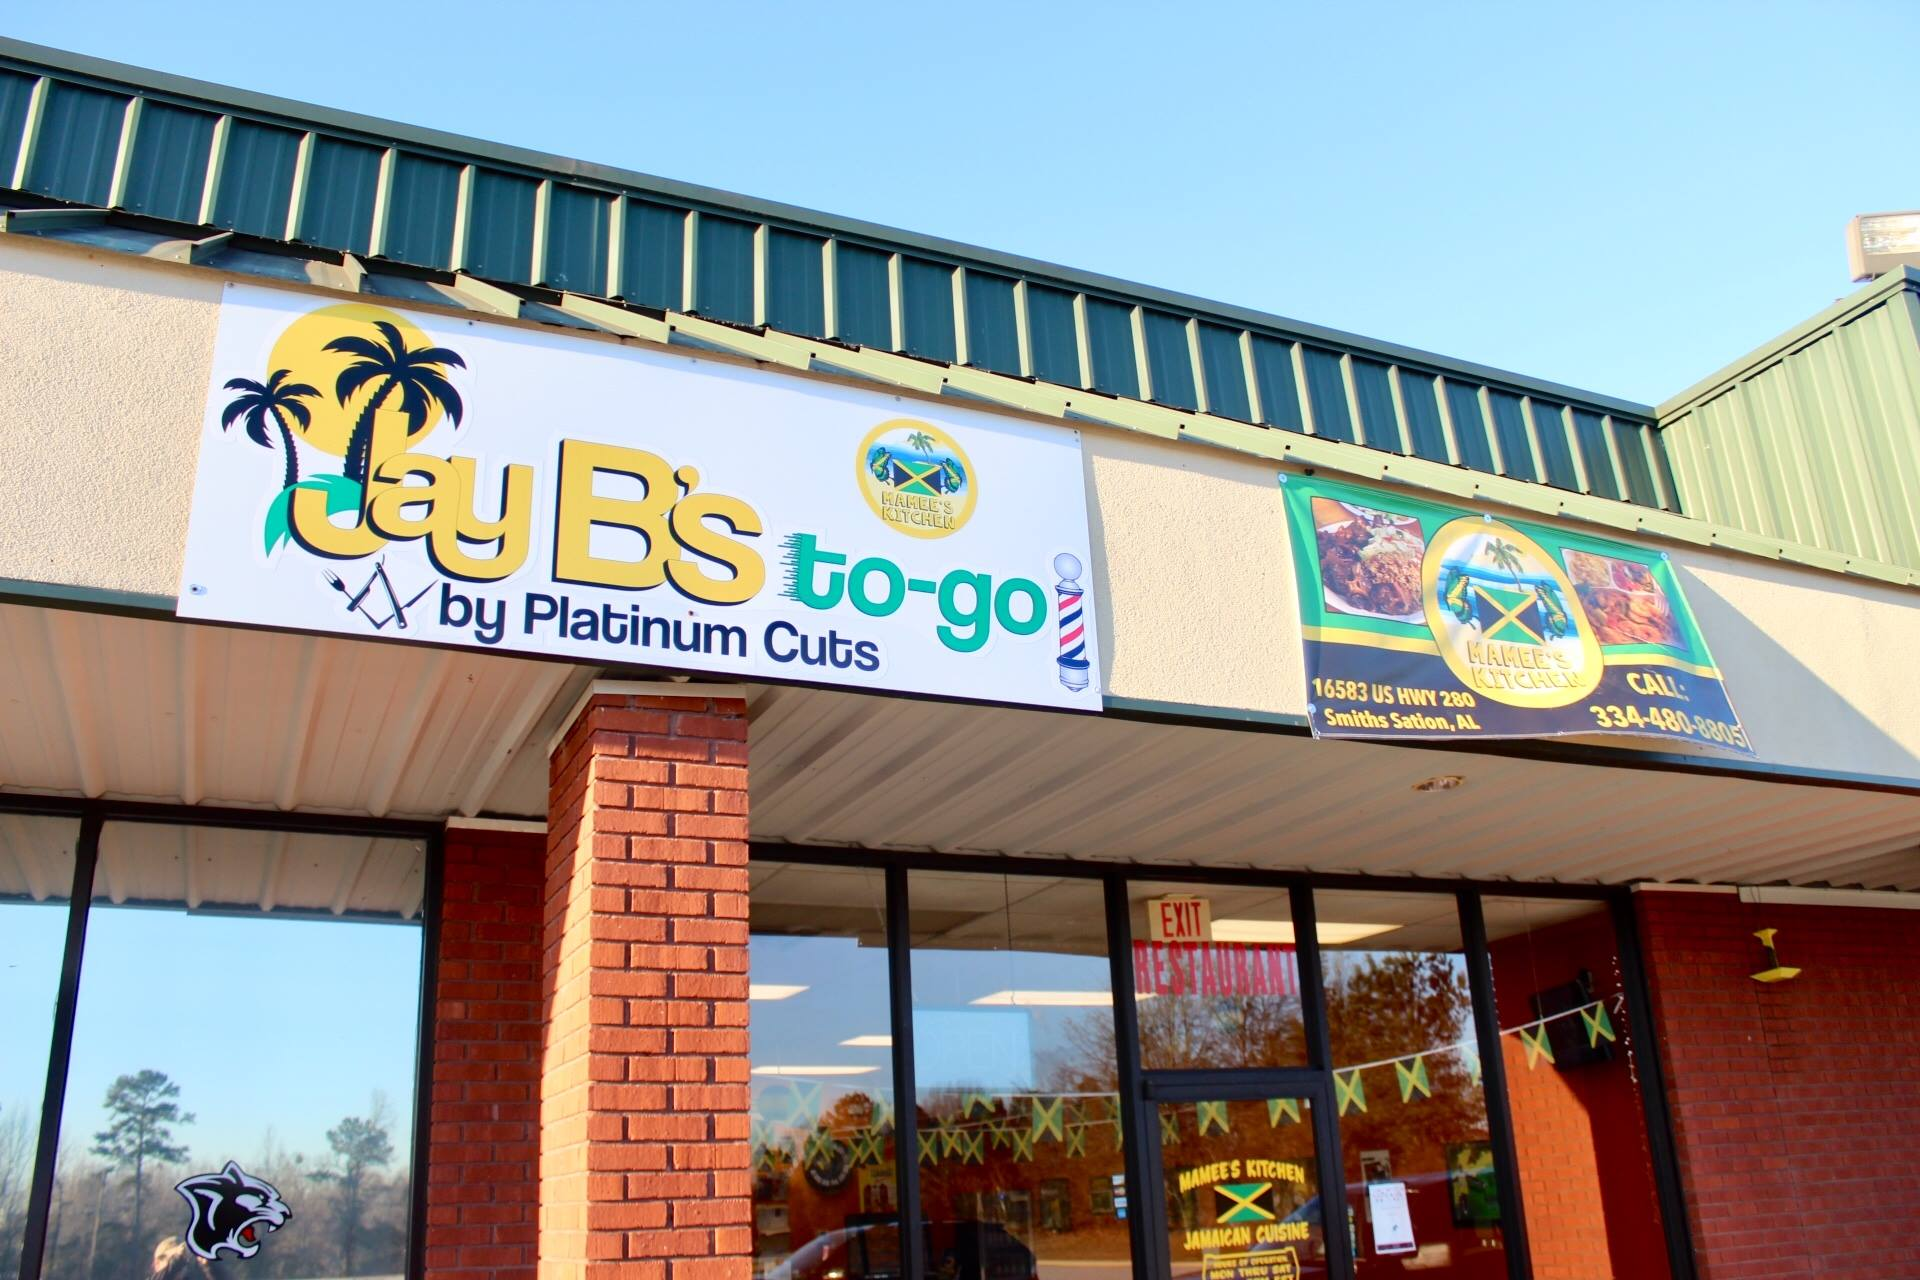 Mamee's Kitchen Authentic Jamaican Cuisine and Catering and Jay B's To-Go by Platinum Cuts